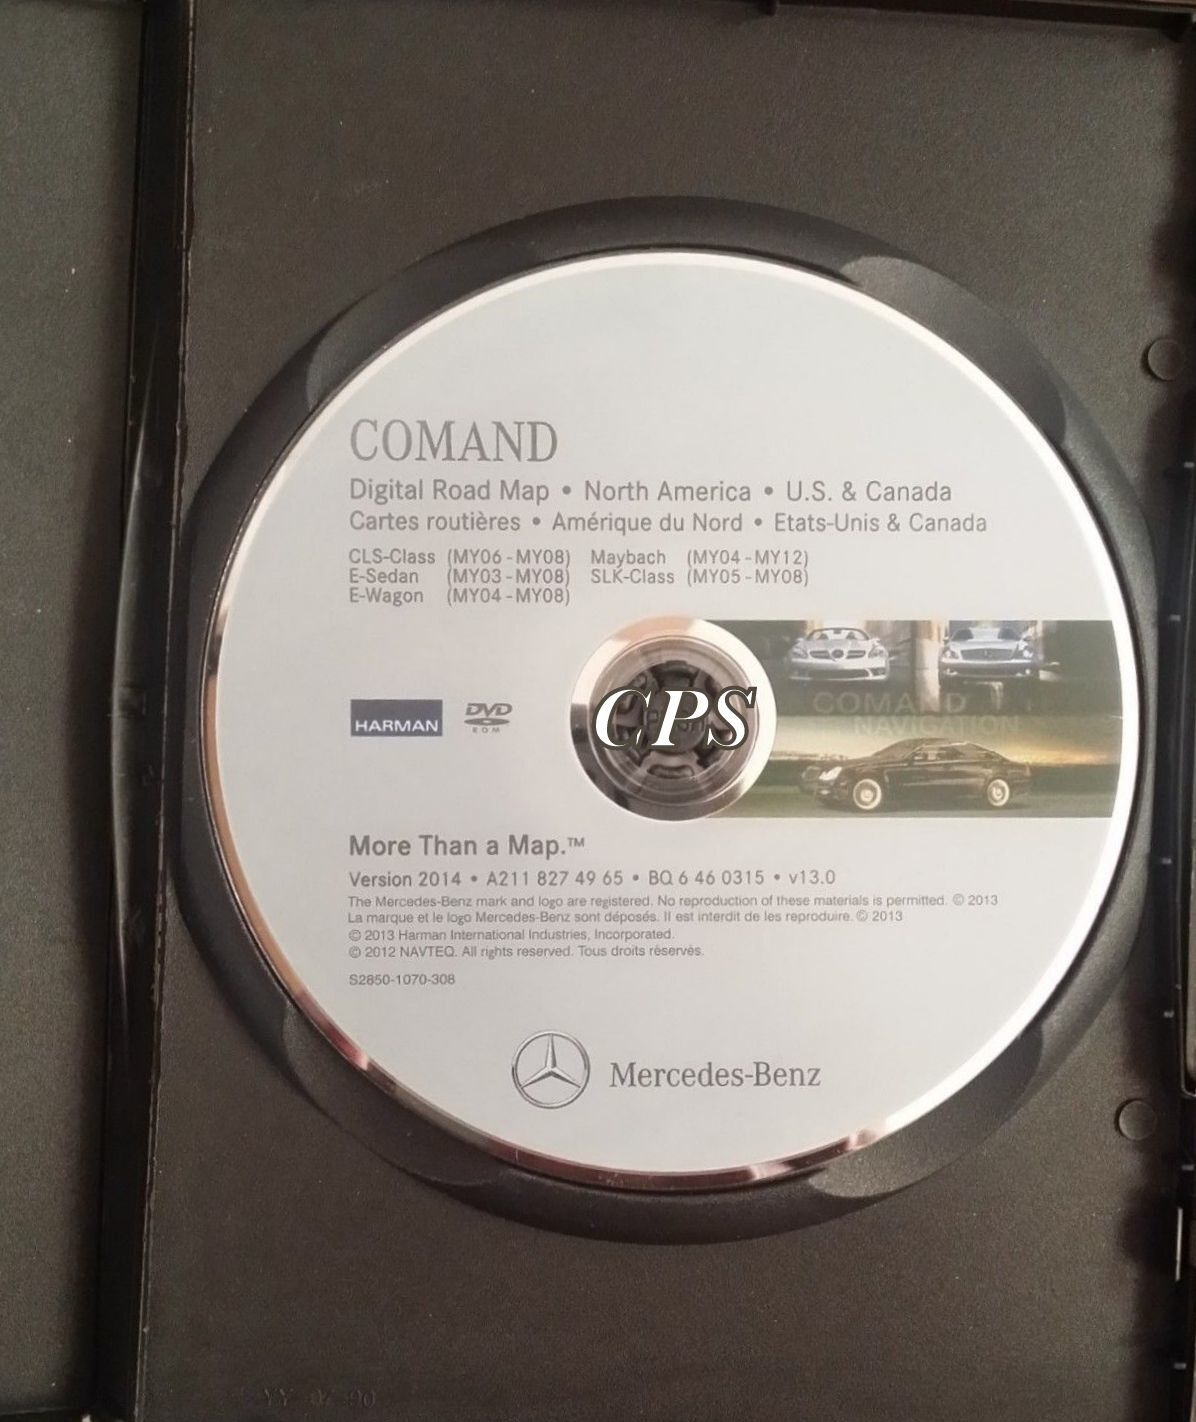 2014 Update Mercedes Ml Ml320 Ml350 Ml500 Ml550 Ml63 Navigation Cd Benz Command Harman Becker Car Stero Wiring Diagram Connector 1 Of 3only Available